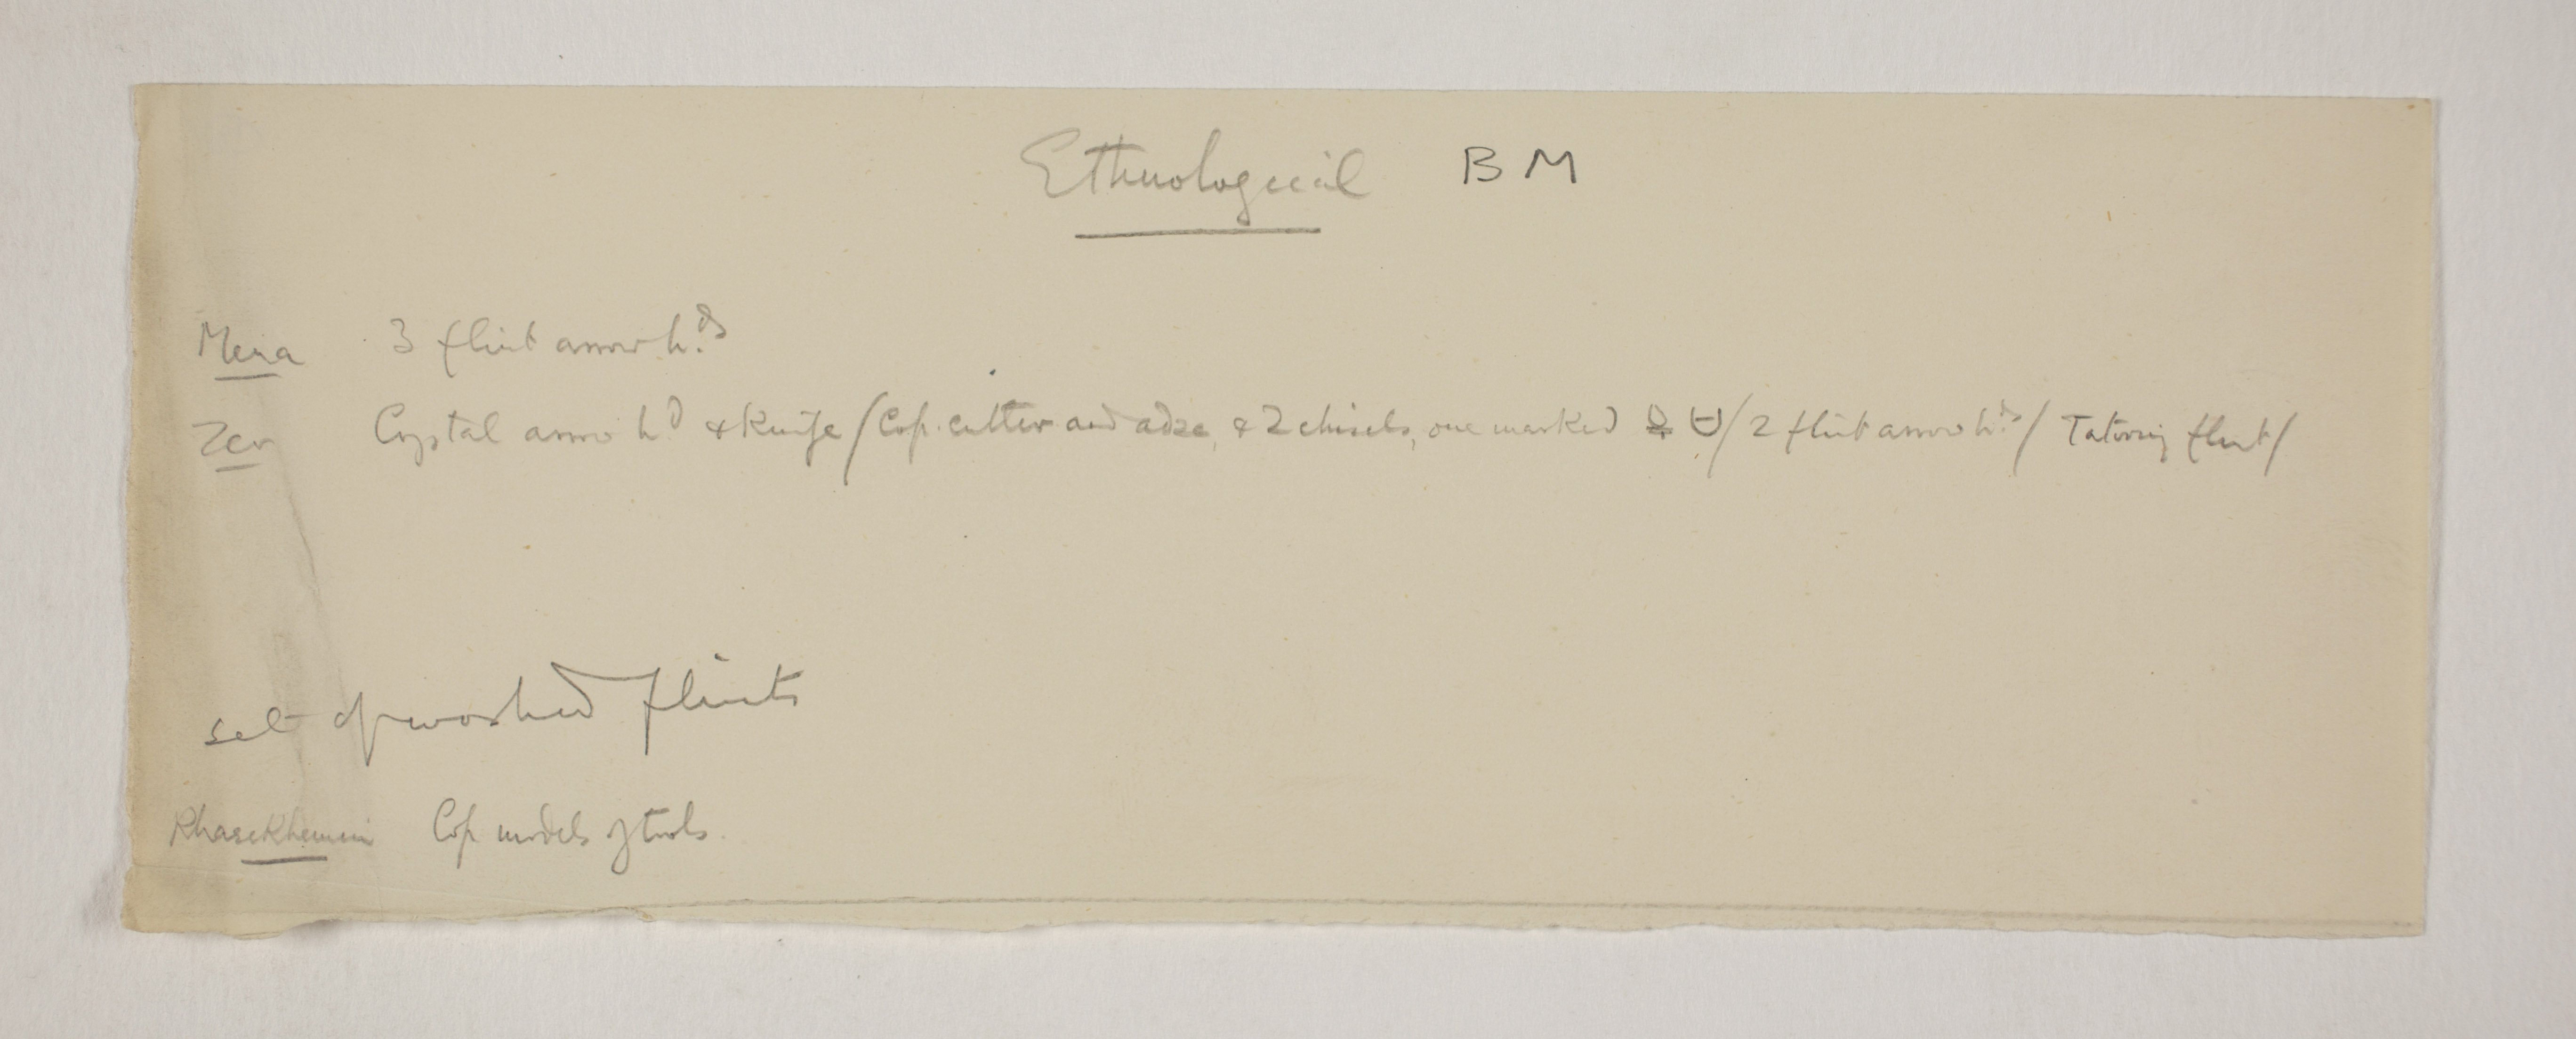 1900-01 Abydos, Bet Khallaf, el-Mahasna Individual institution list  PMA/WFP1/D/9/18